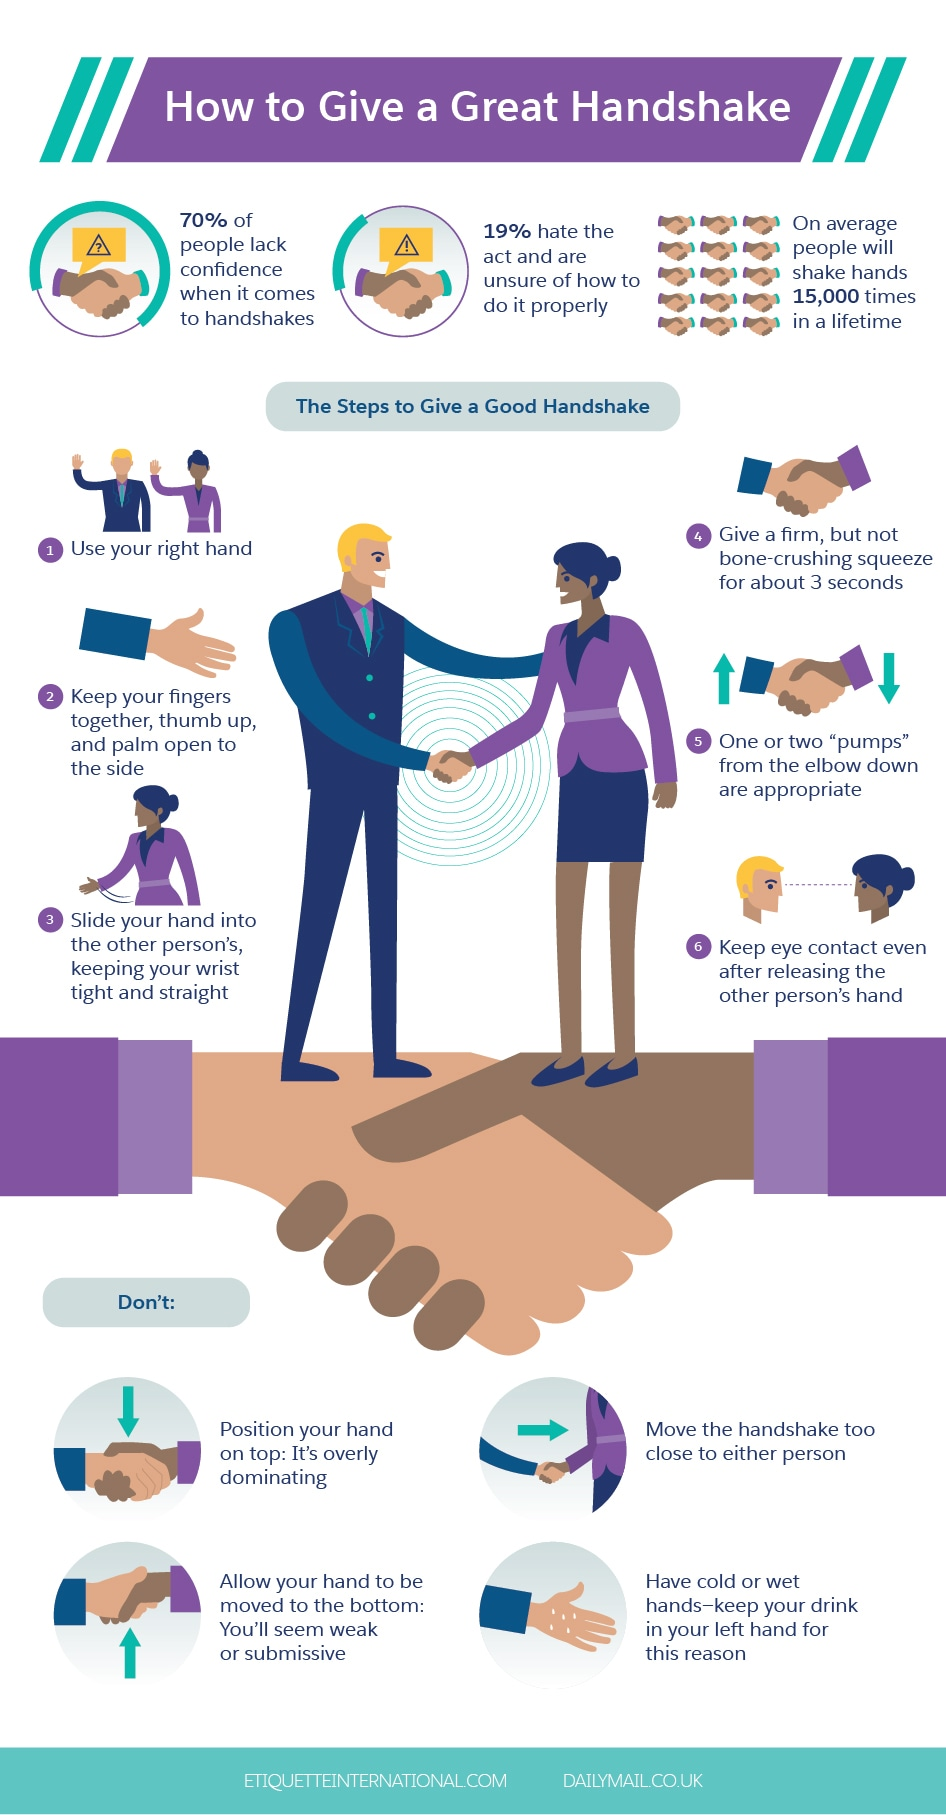 How to Give a Great Handshake